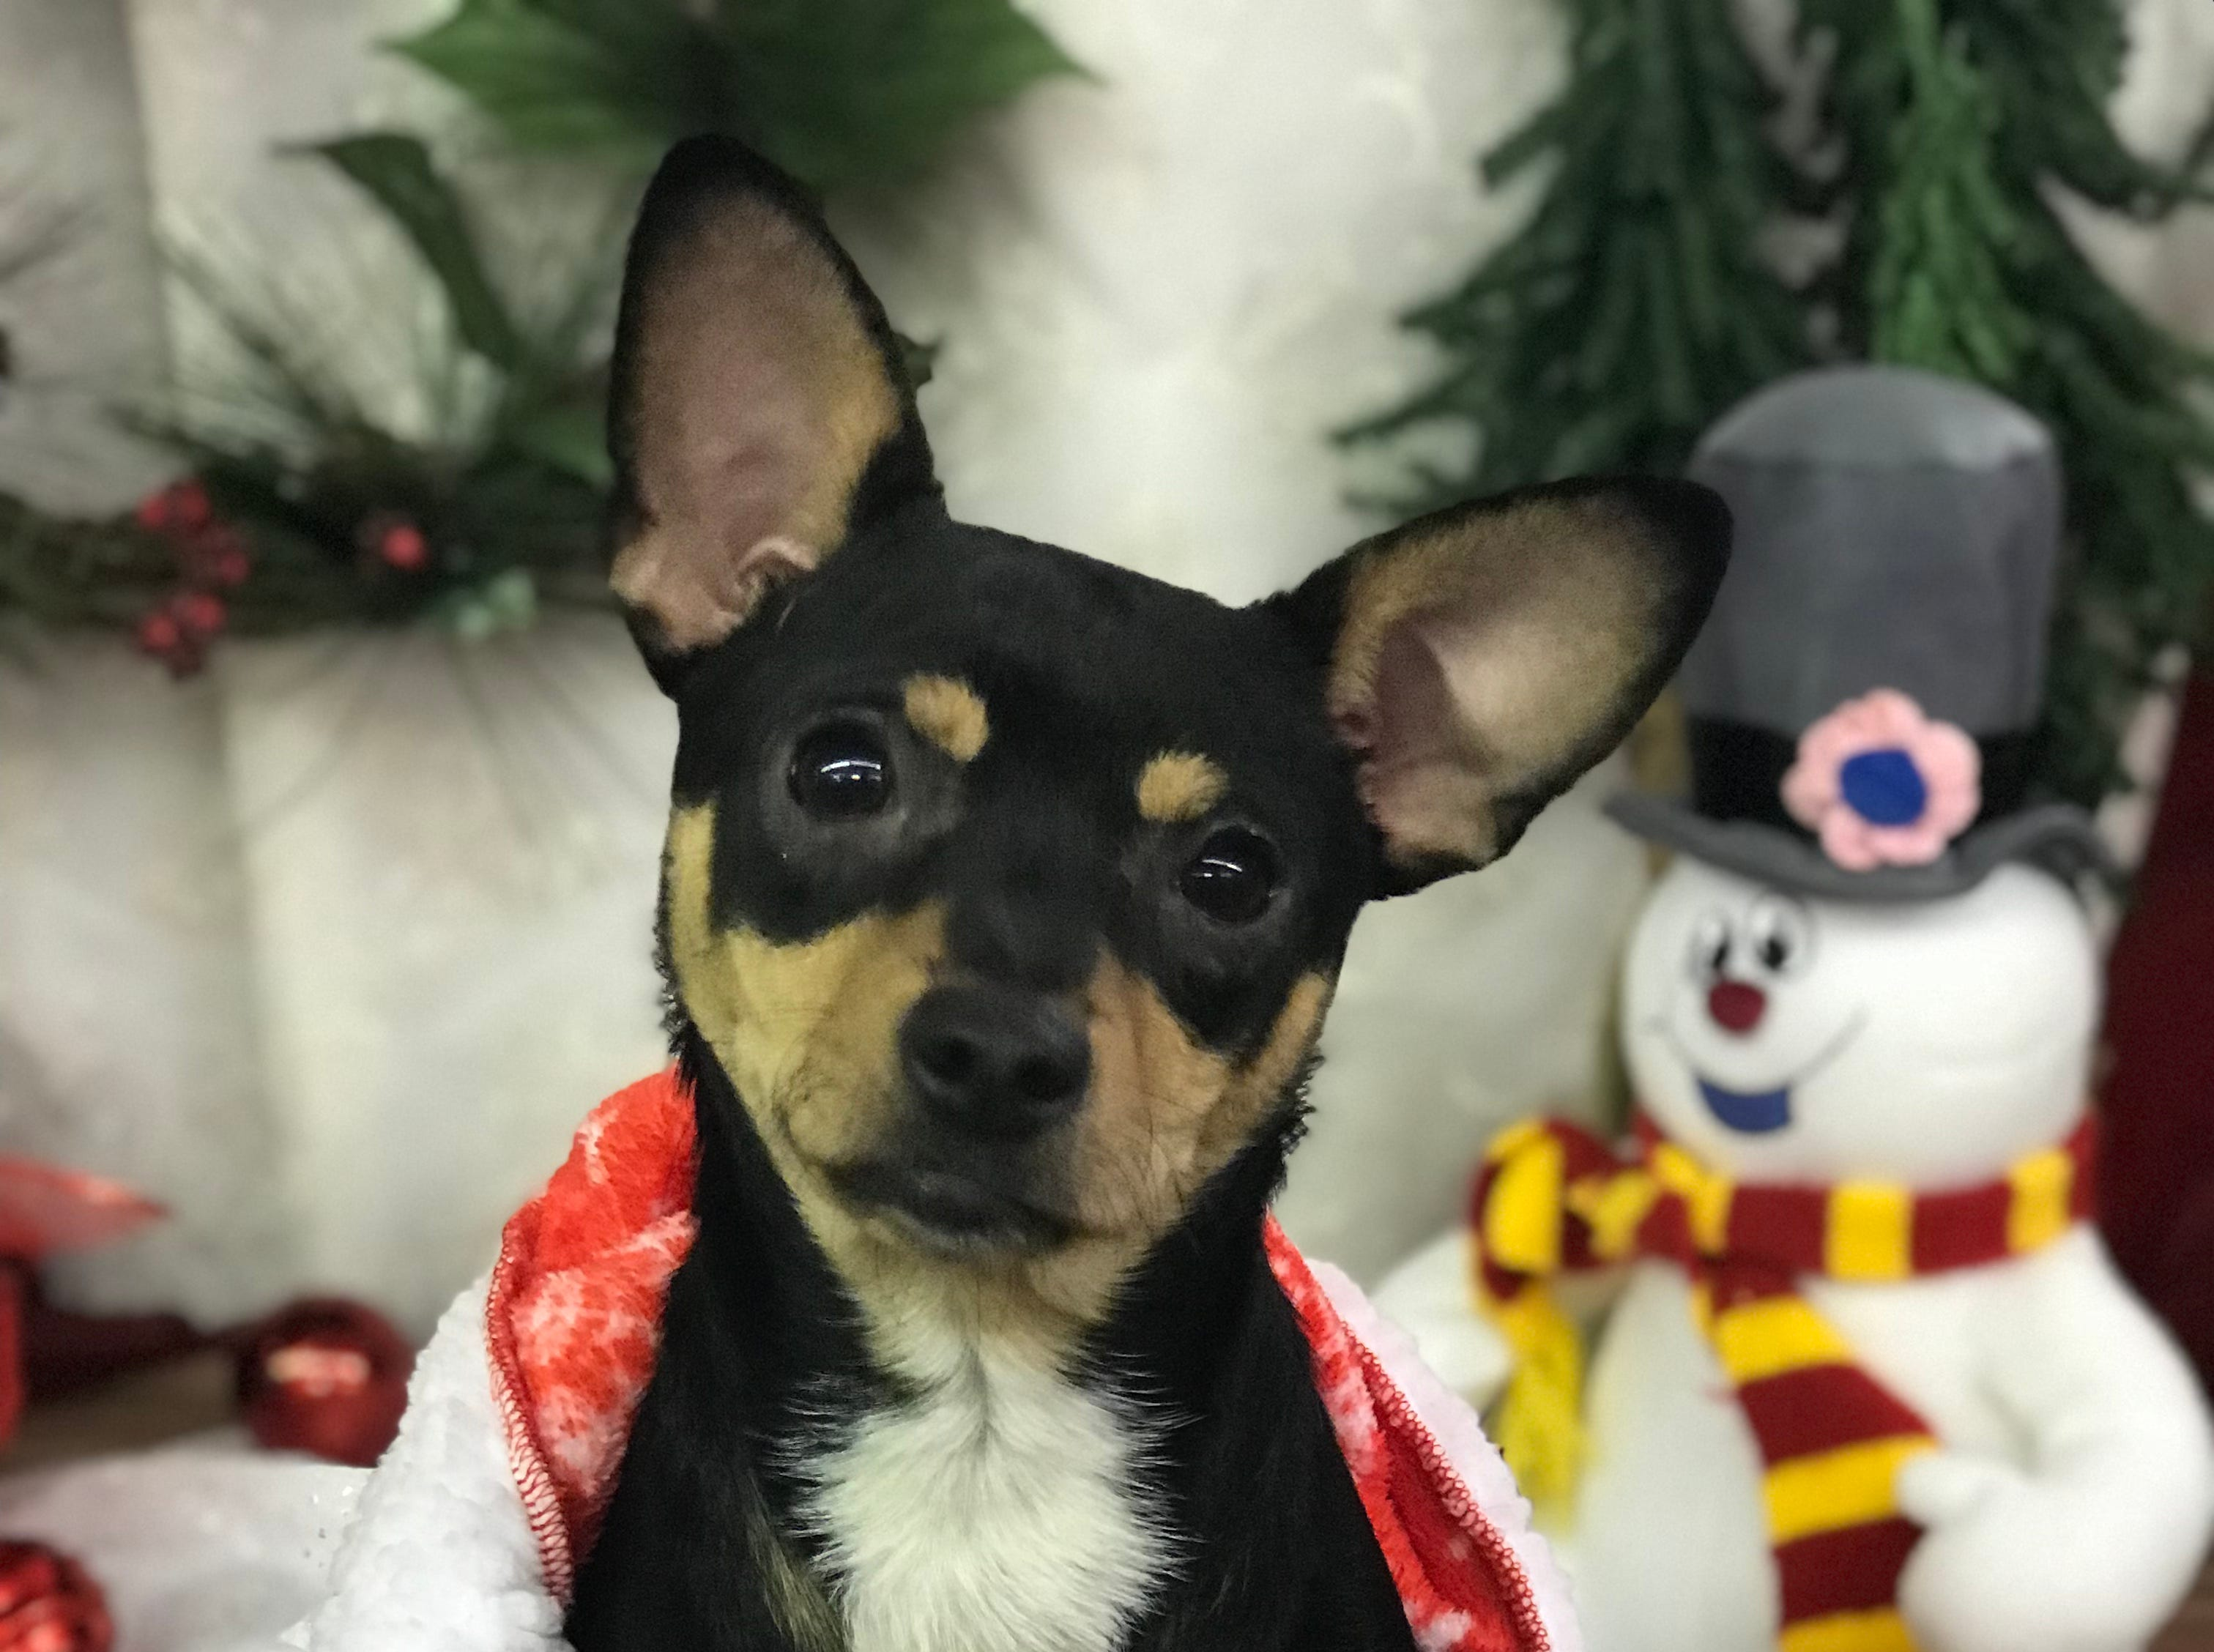 Kiwi is a 1-year-old, male Chihuahua/ terrier mix with a three-quarter tail. Kiwi does well with other dogs and people, and is learning good leash manners. Visit Tails of Rescue Adoption Center, 981 Lake Blvd., Redding. Call 448-7444. Go to http://tailsofrescue.org.